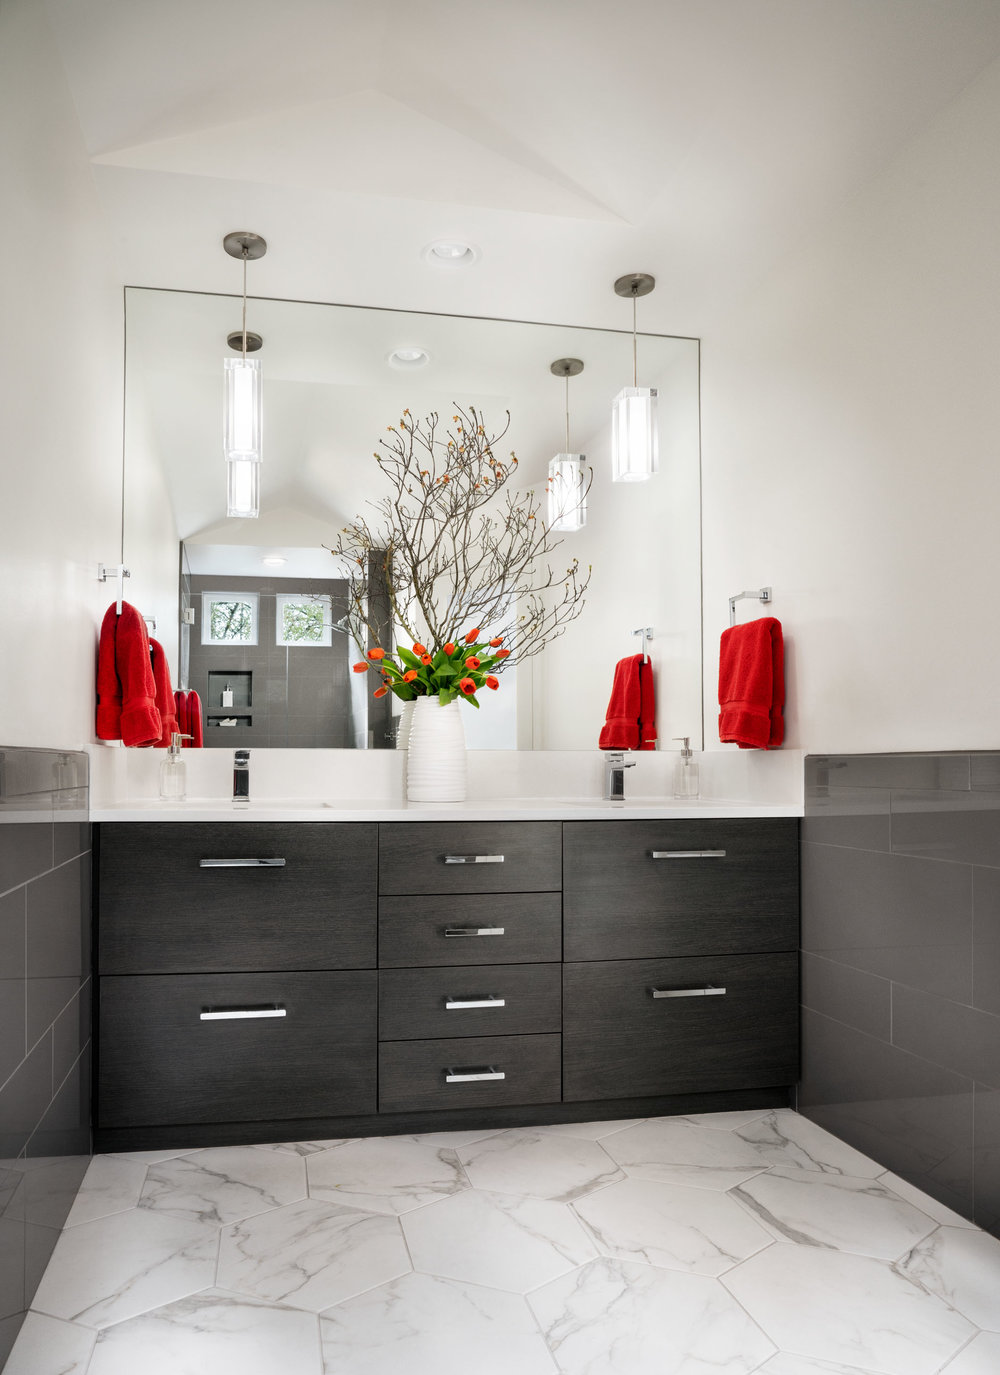 The bath's new contemporary lighting and cabinetry.